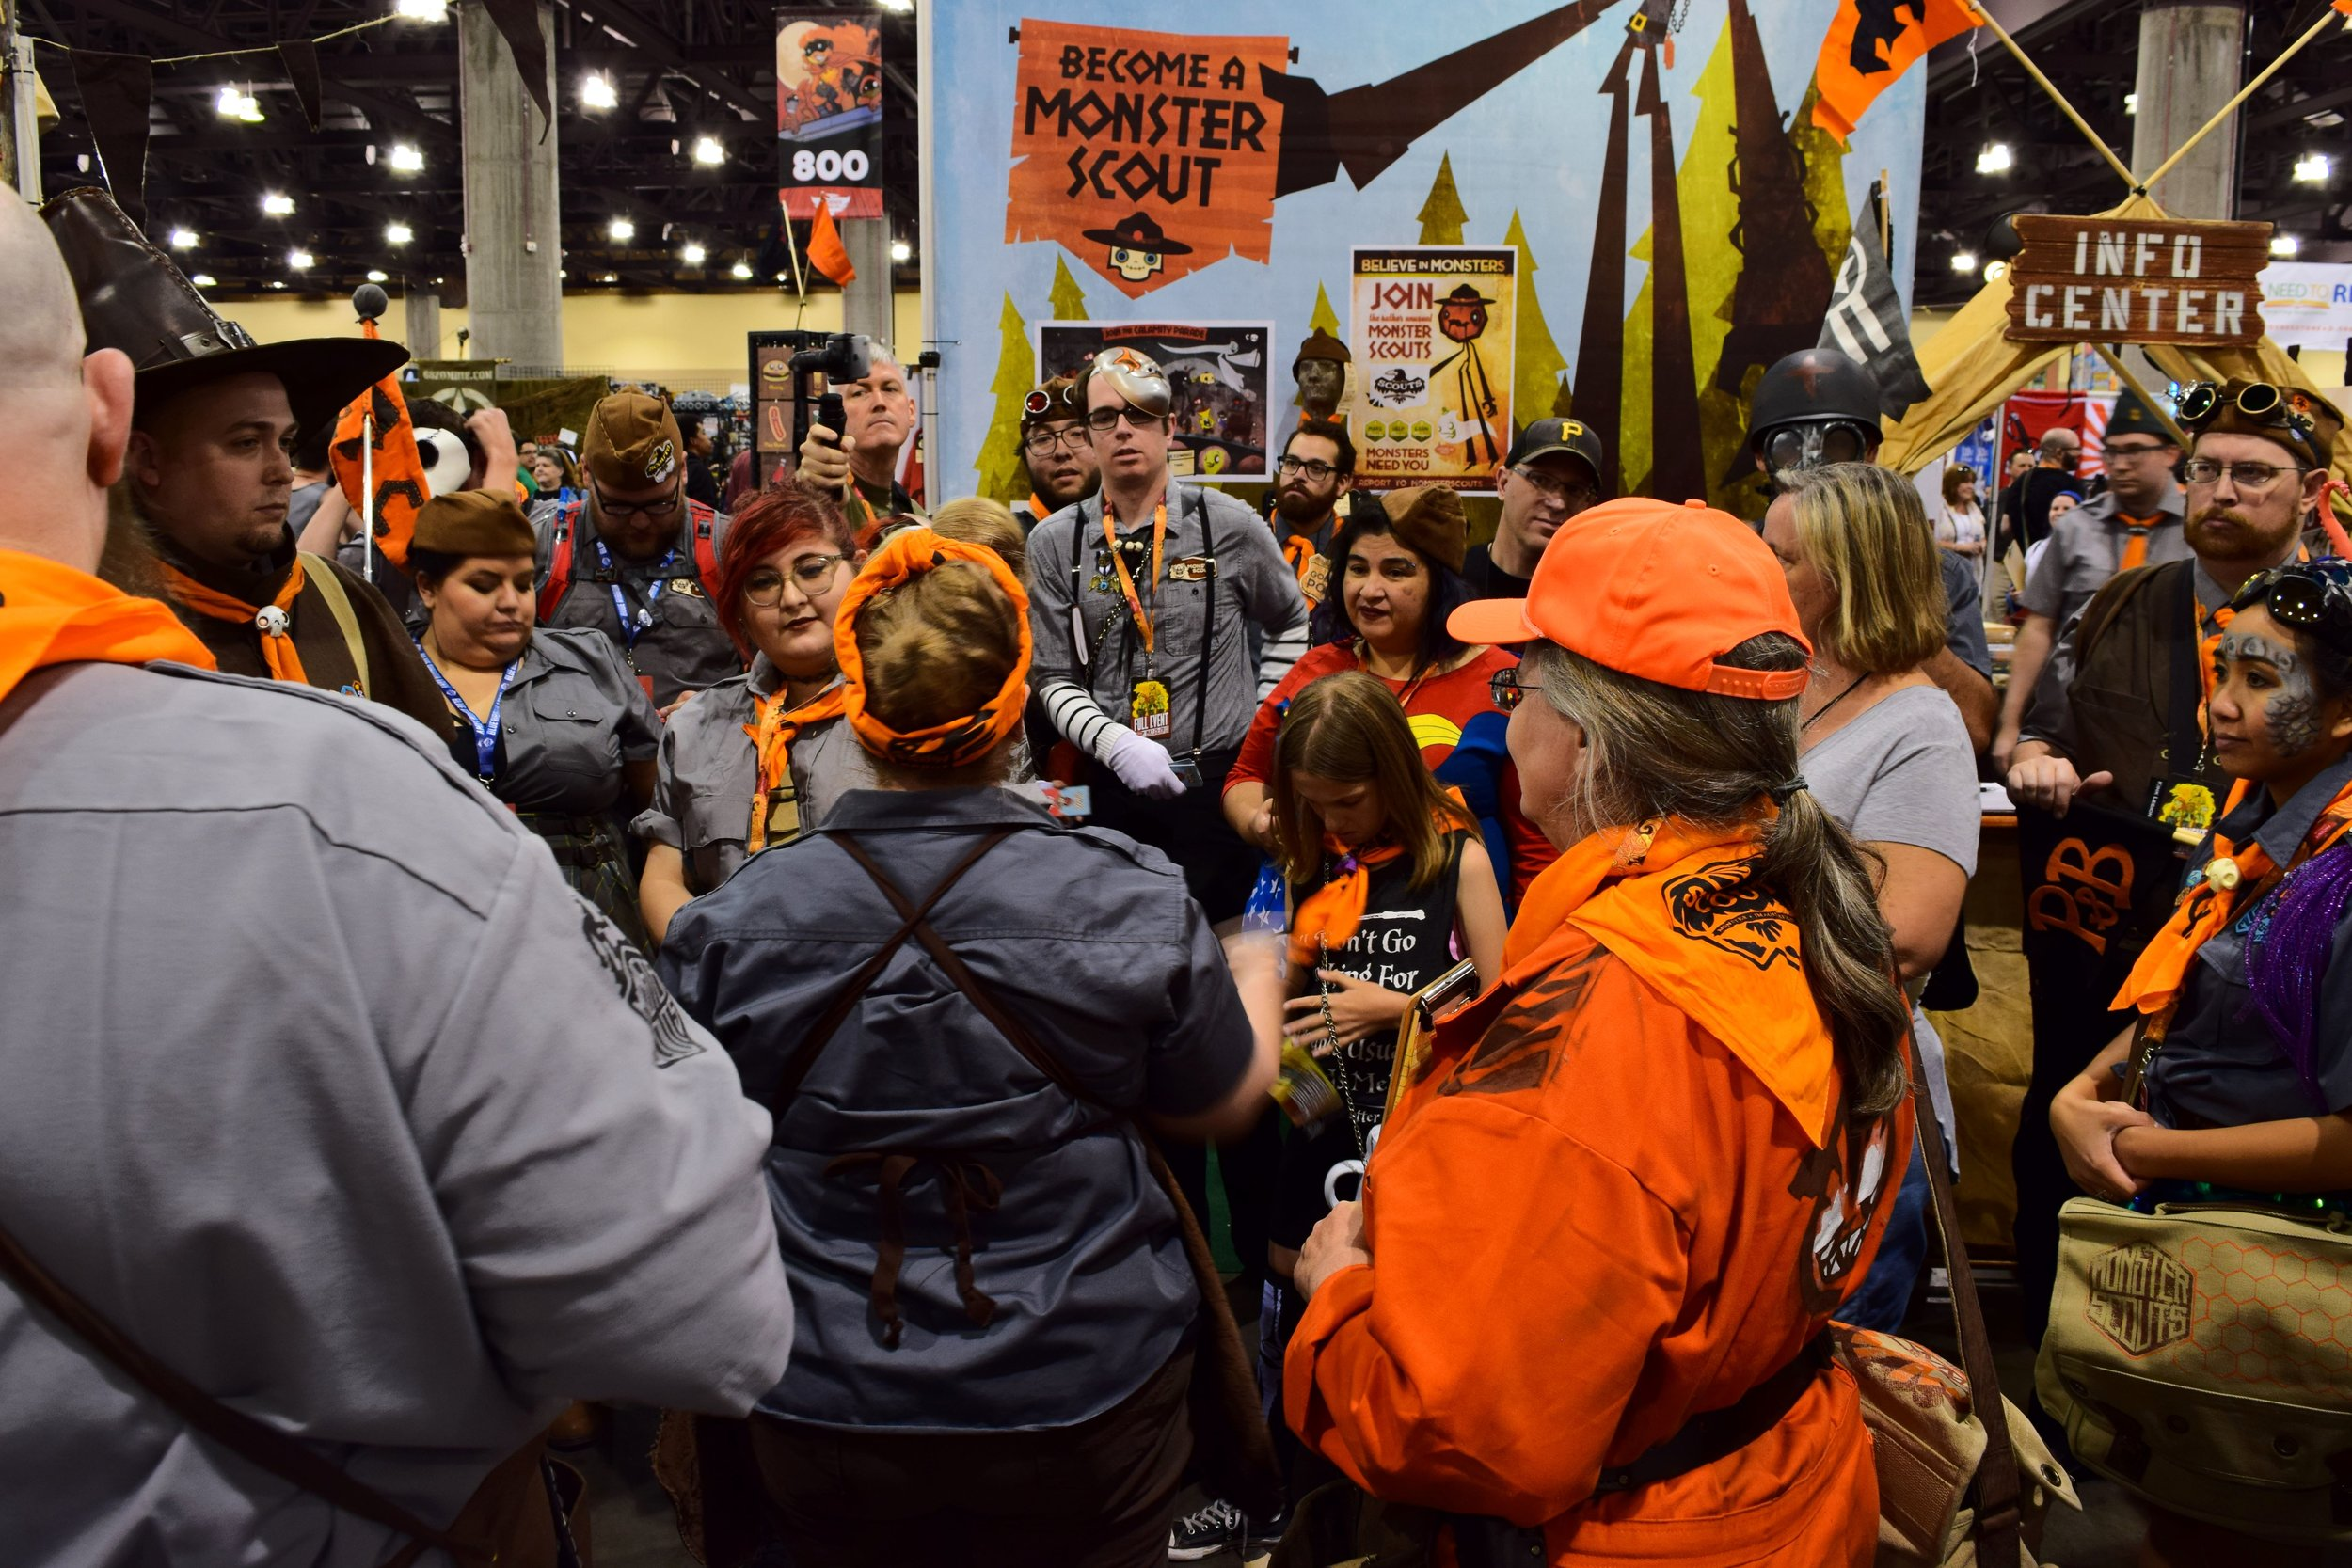 Dawna Davis leads the Monster Scouts meeting at Phoenix Comic Con 2017.